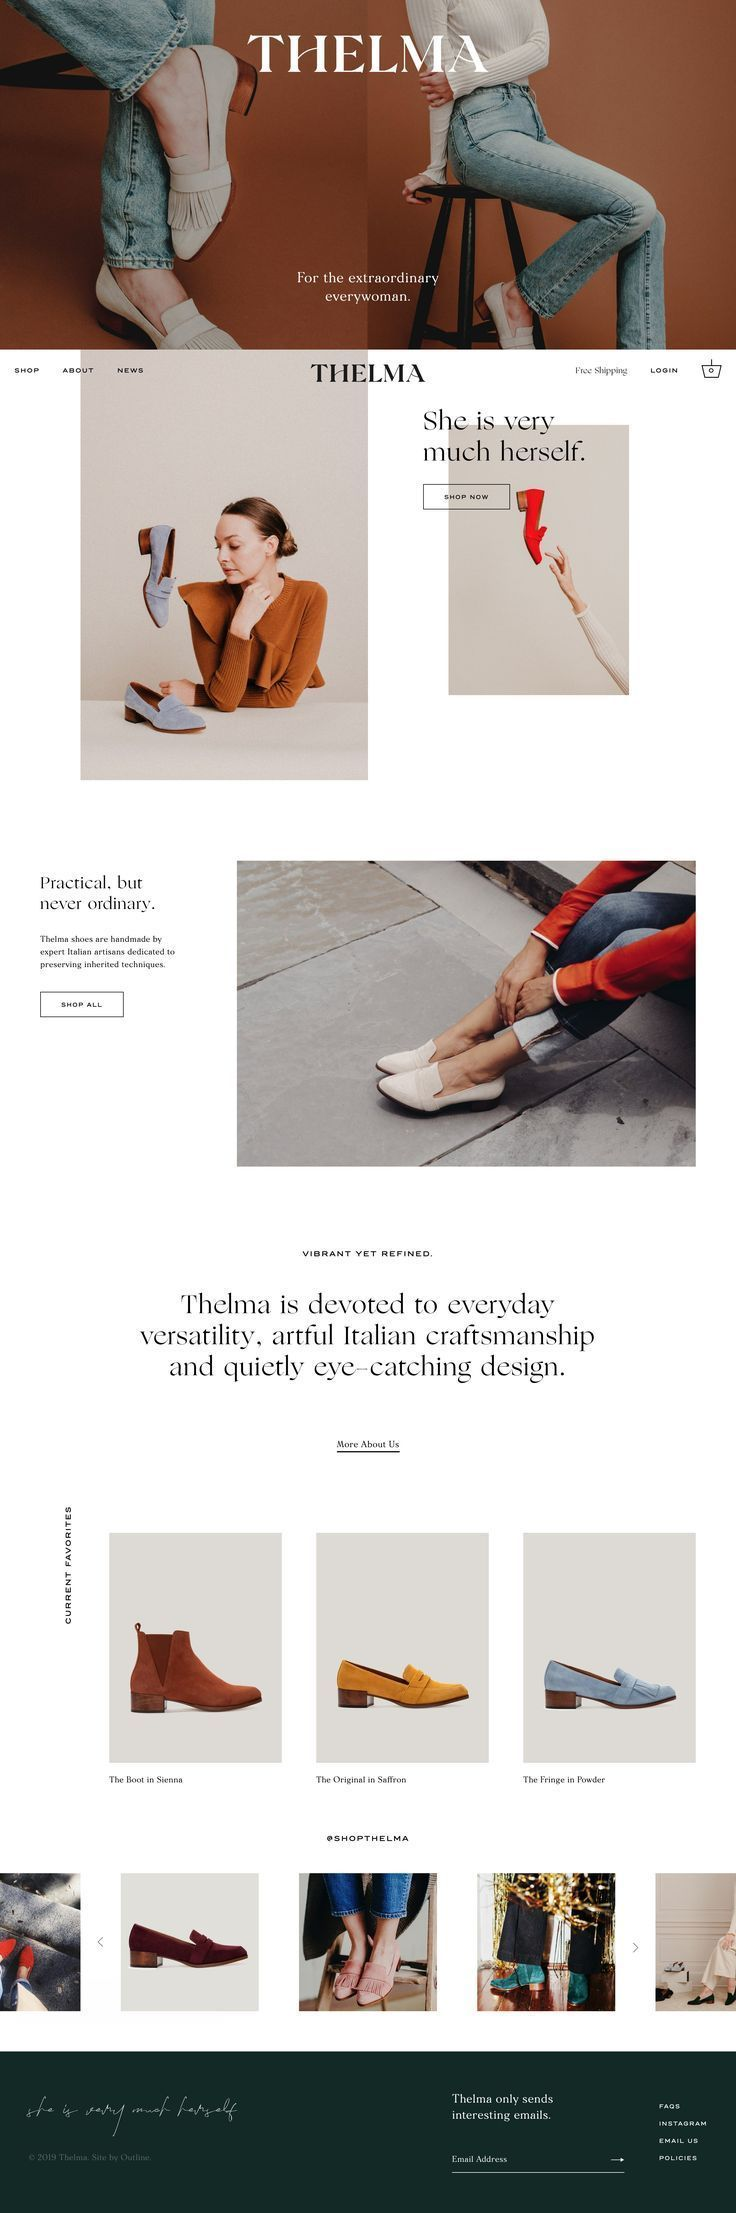 Minimalist website design with white space and serif typefaces